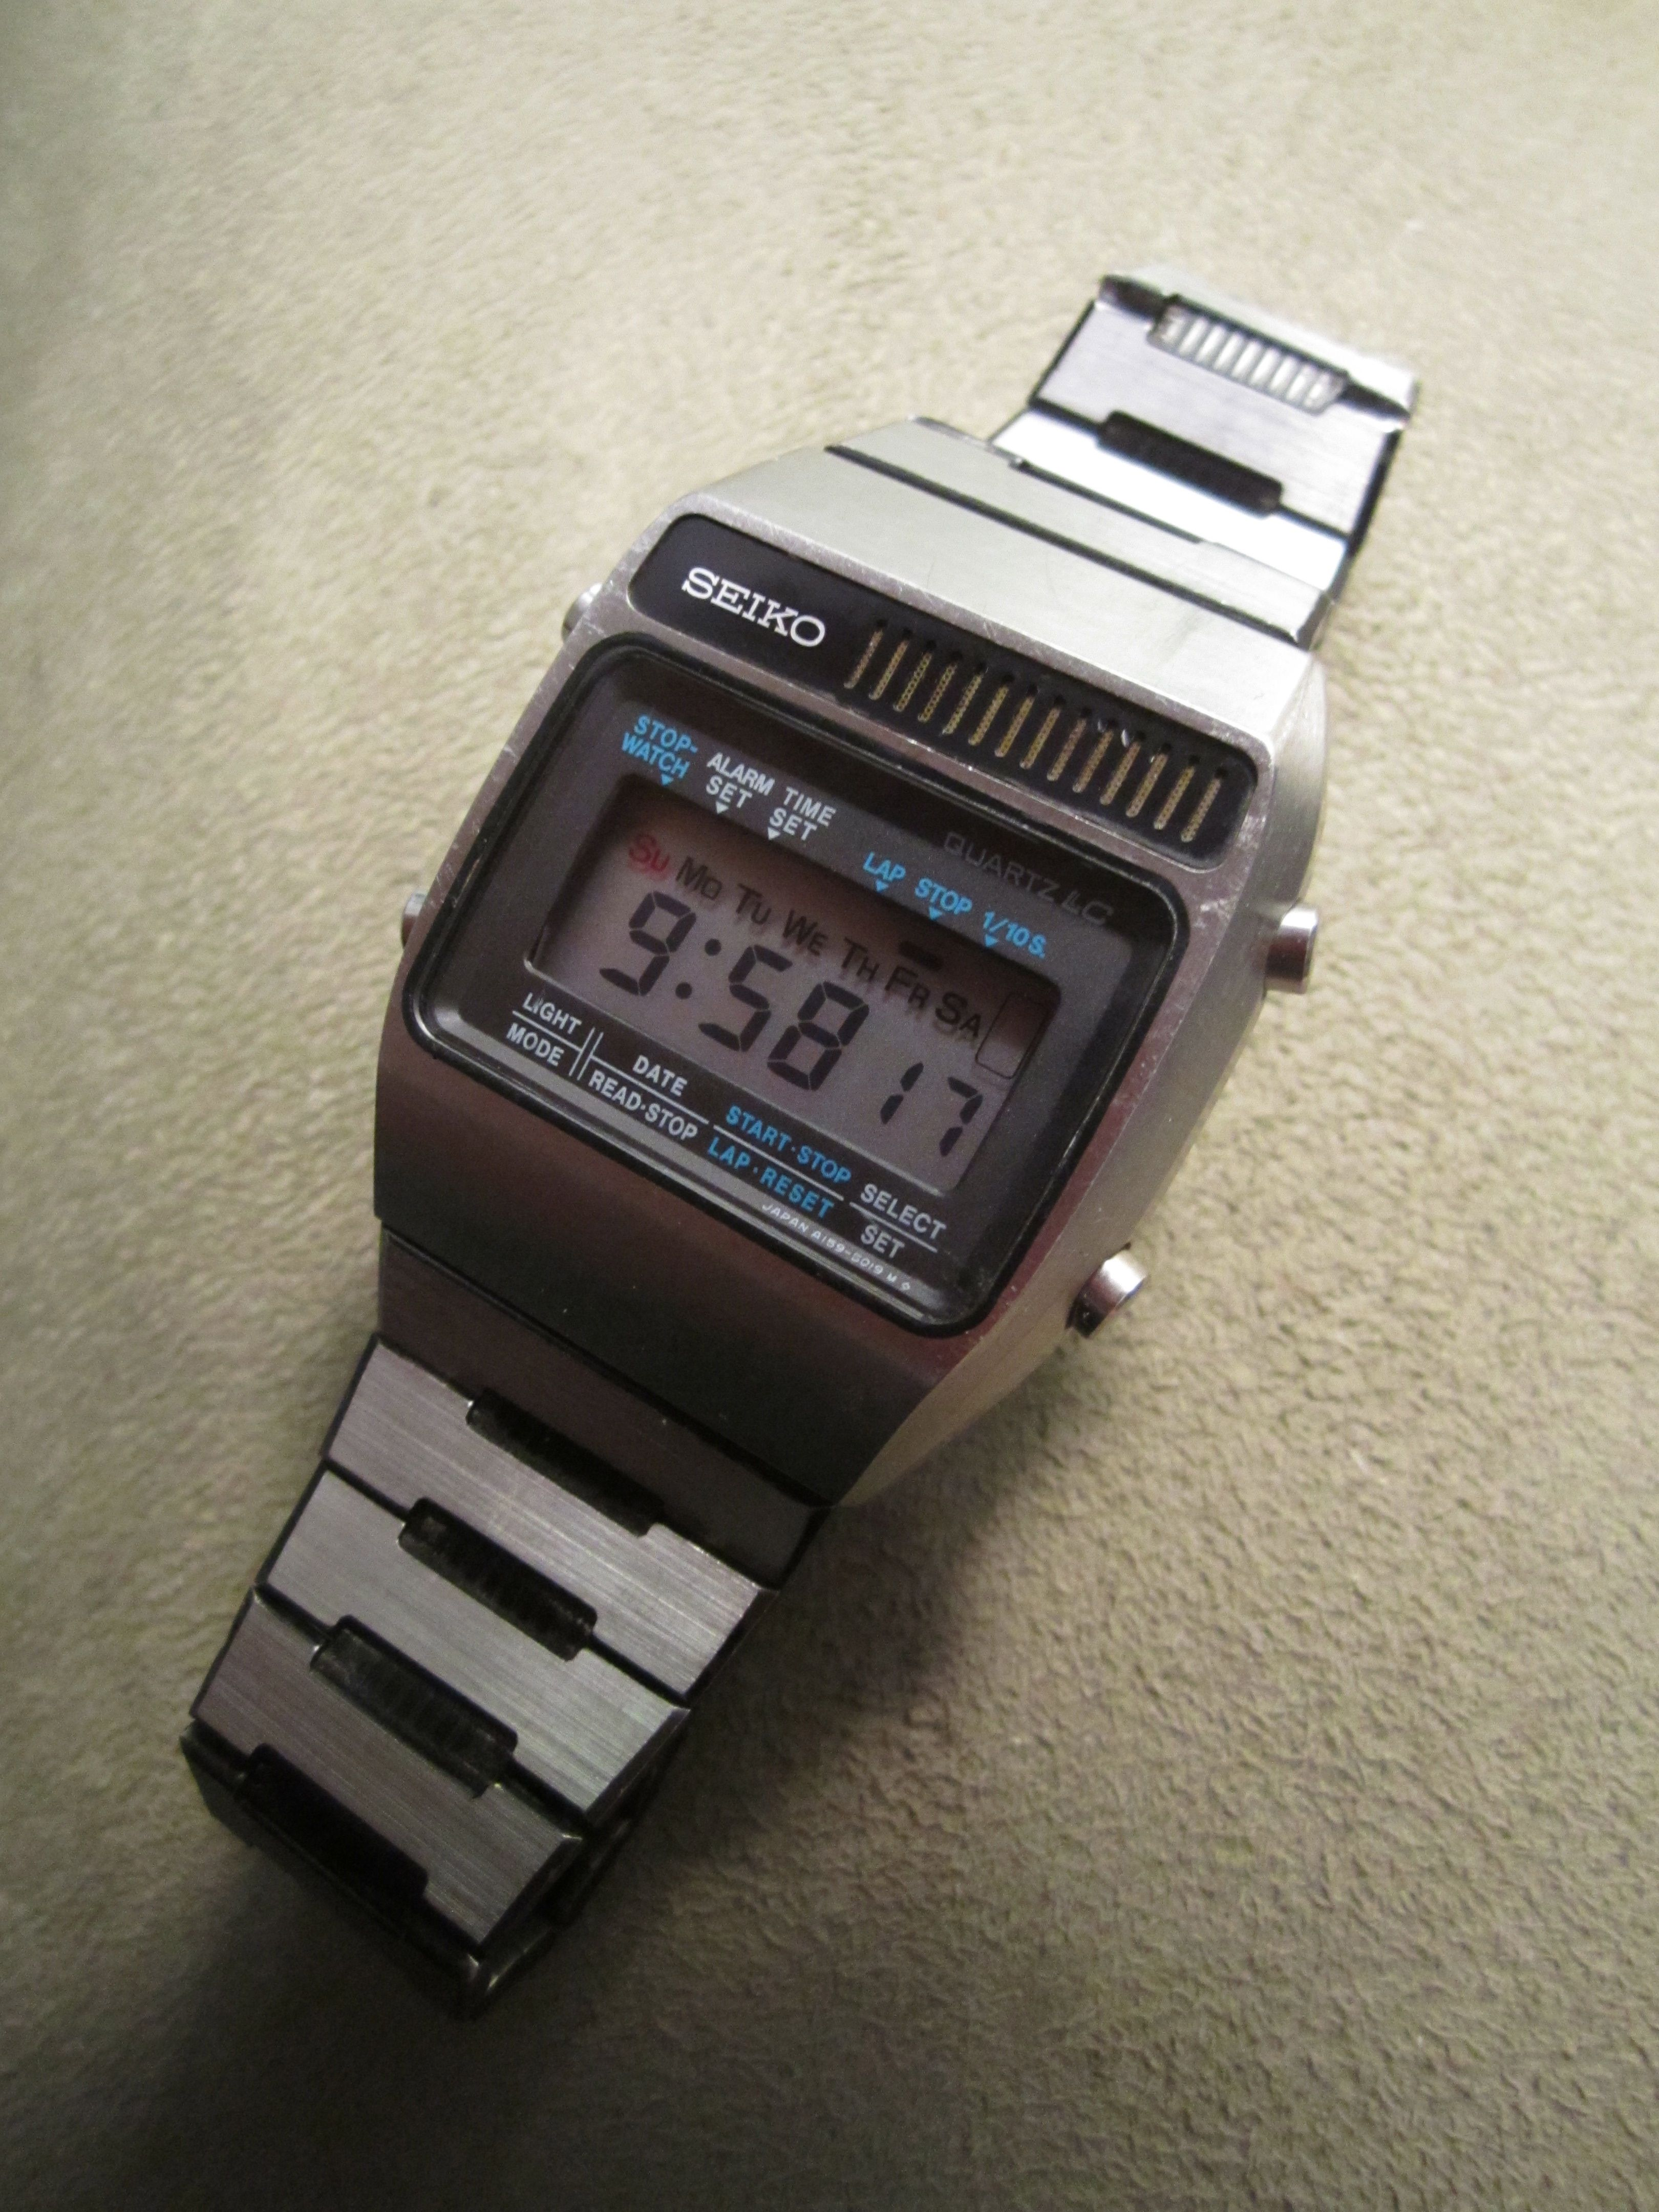 Seiko A159-5009, March '78.  Words fail me.  Amazing quality - solid stainless steel, beautifully machined.  Almost all steel, copper, glass, rubber.  Groundbreaking technology in 1978, when these cost the equivalent of over 500 USD.